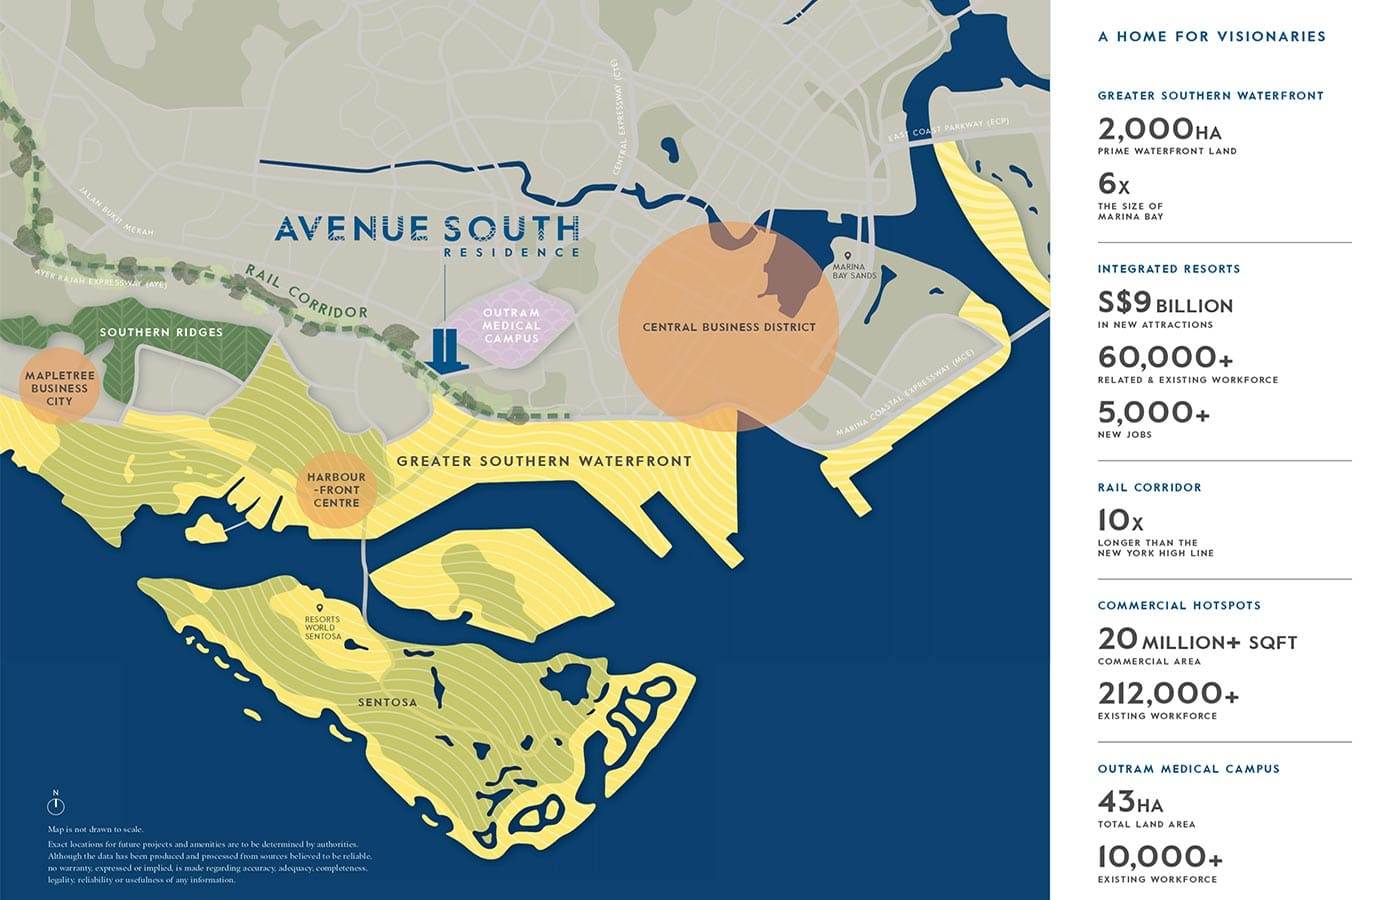 Avenue-South-Residence-Condo-Location-Map-1